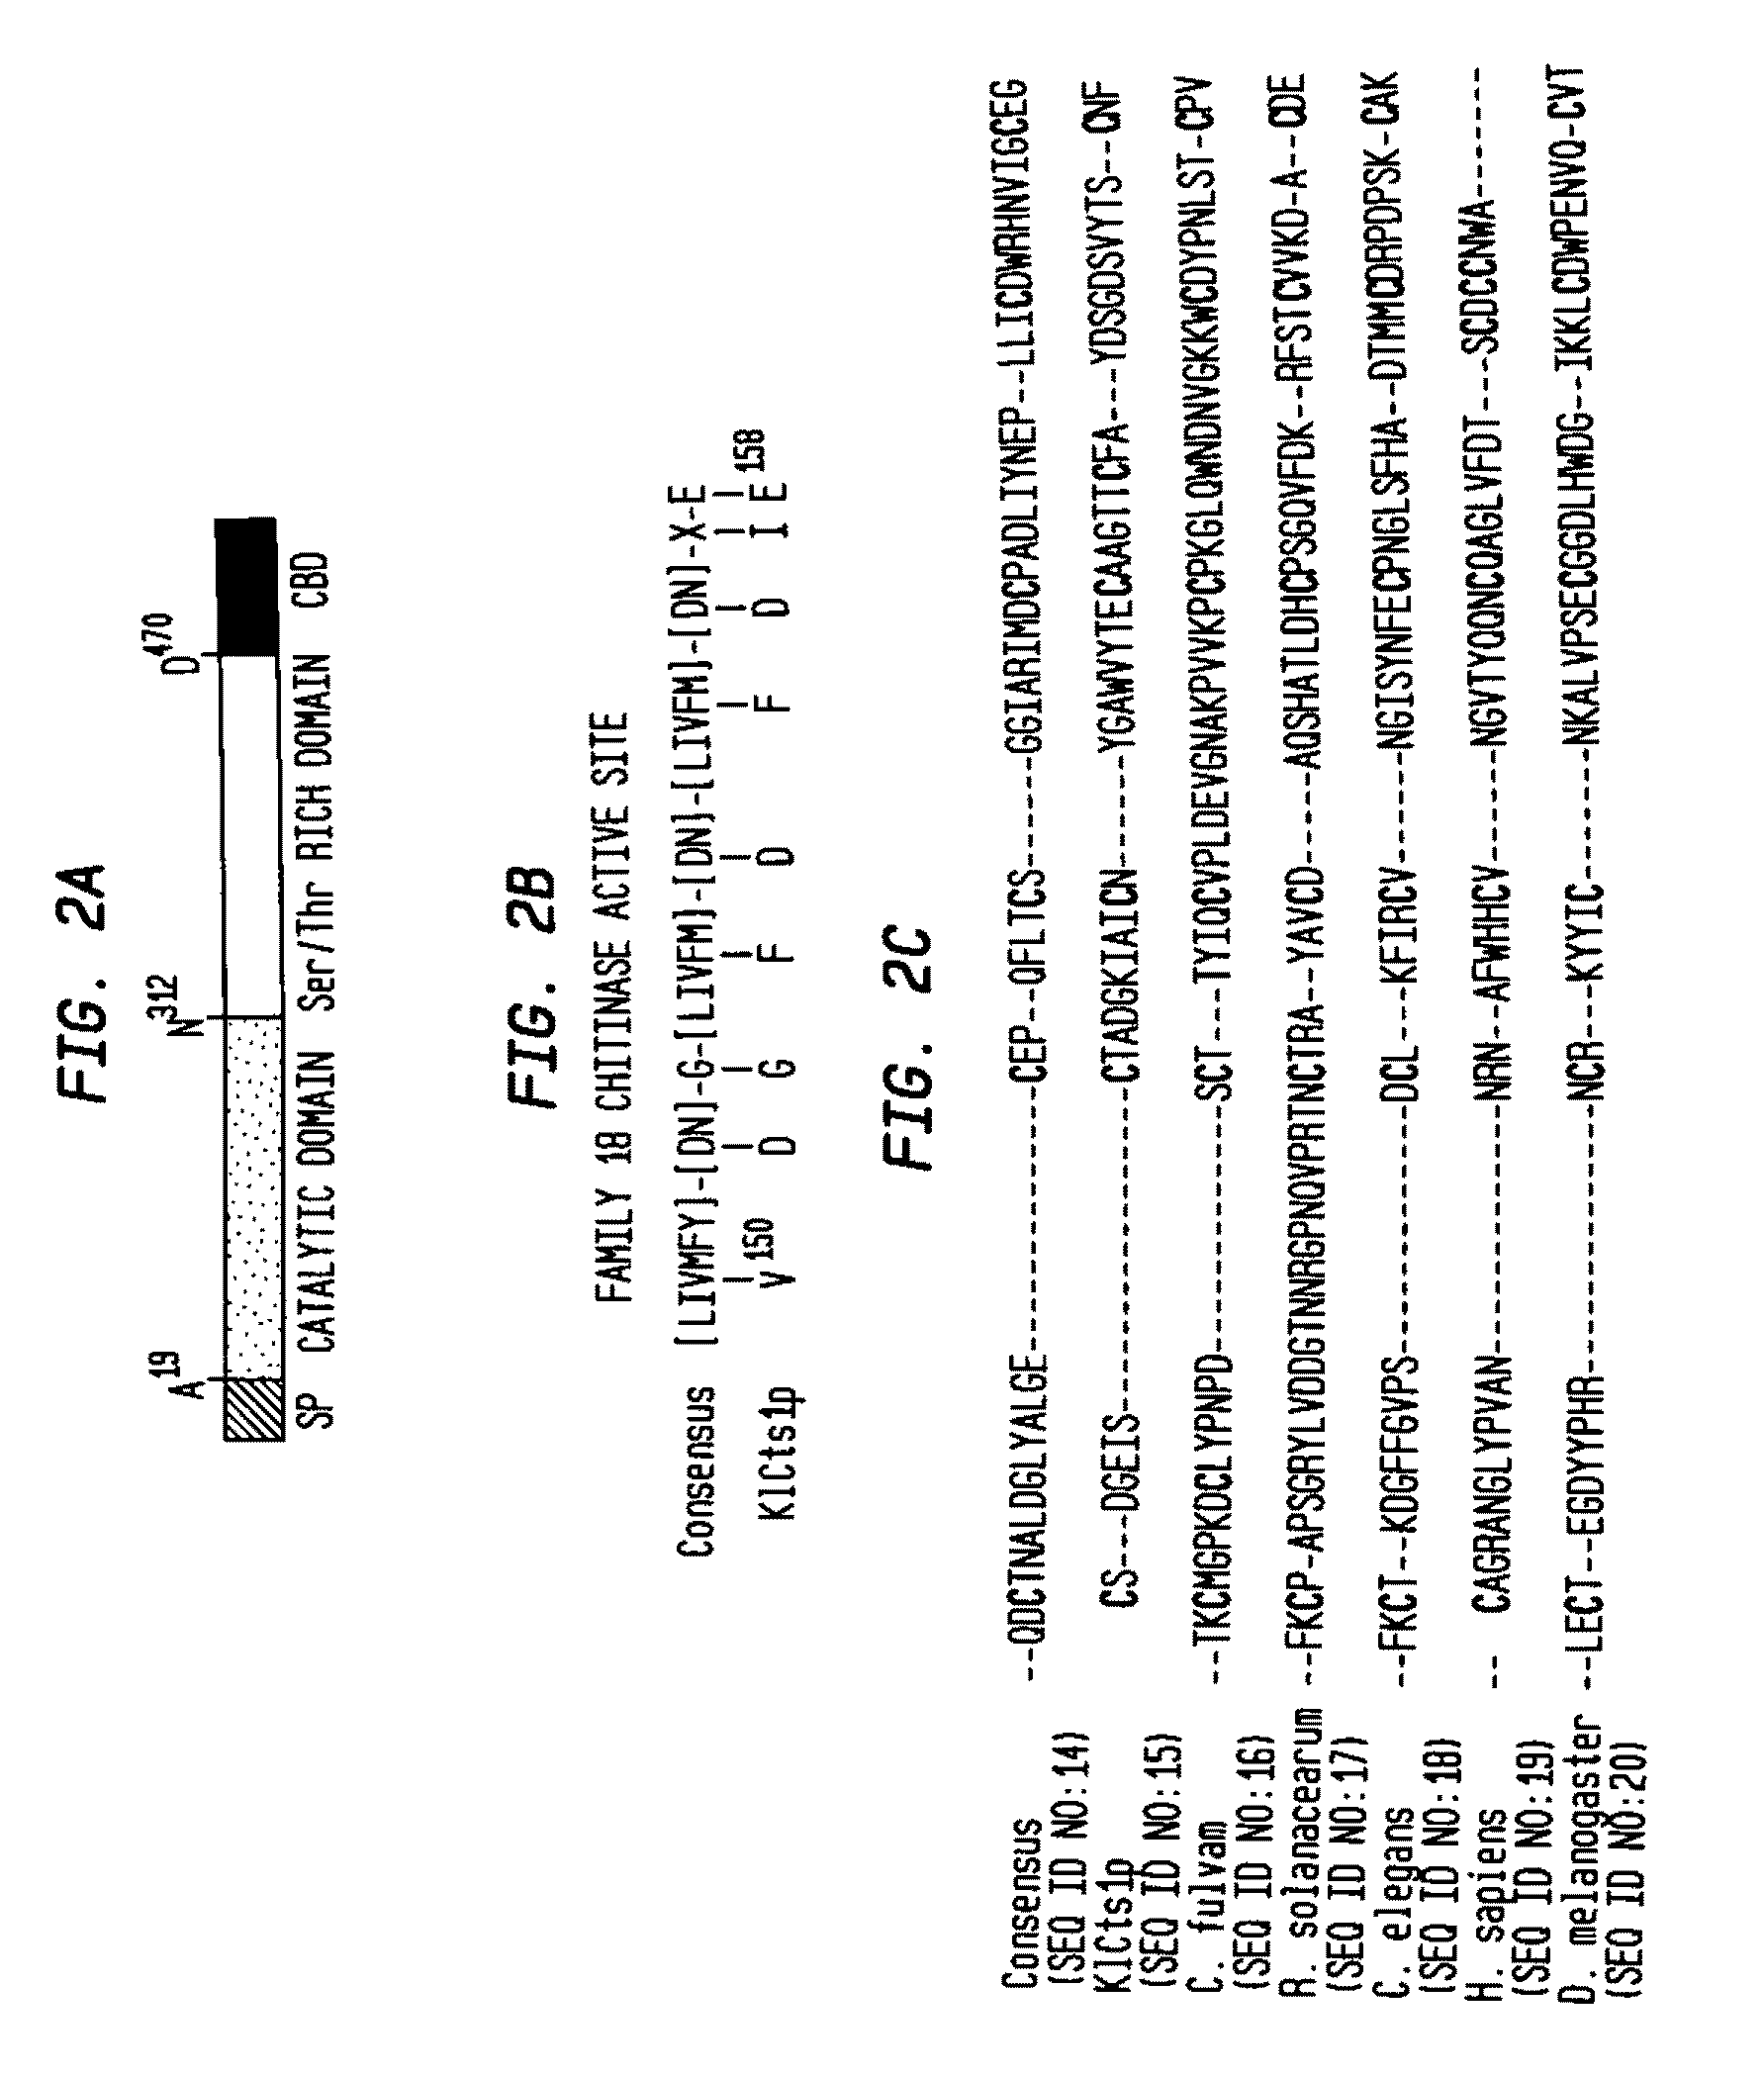 US8119390B2 - Methods and compositions for concentrating